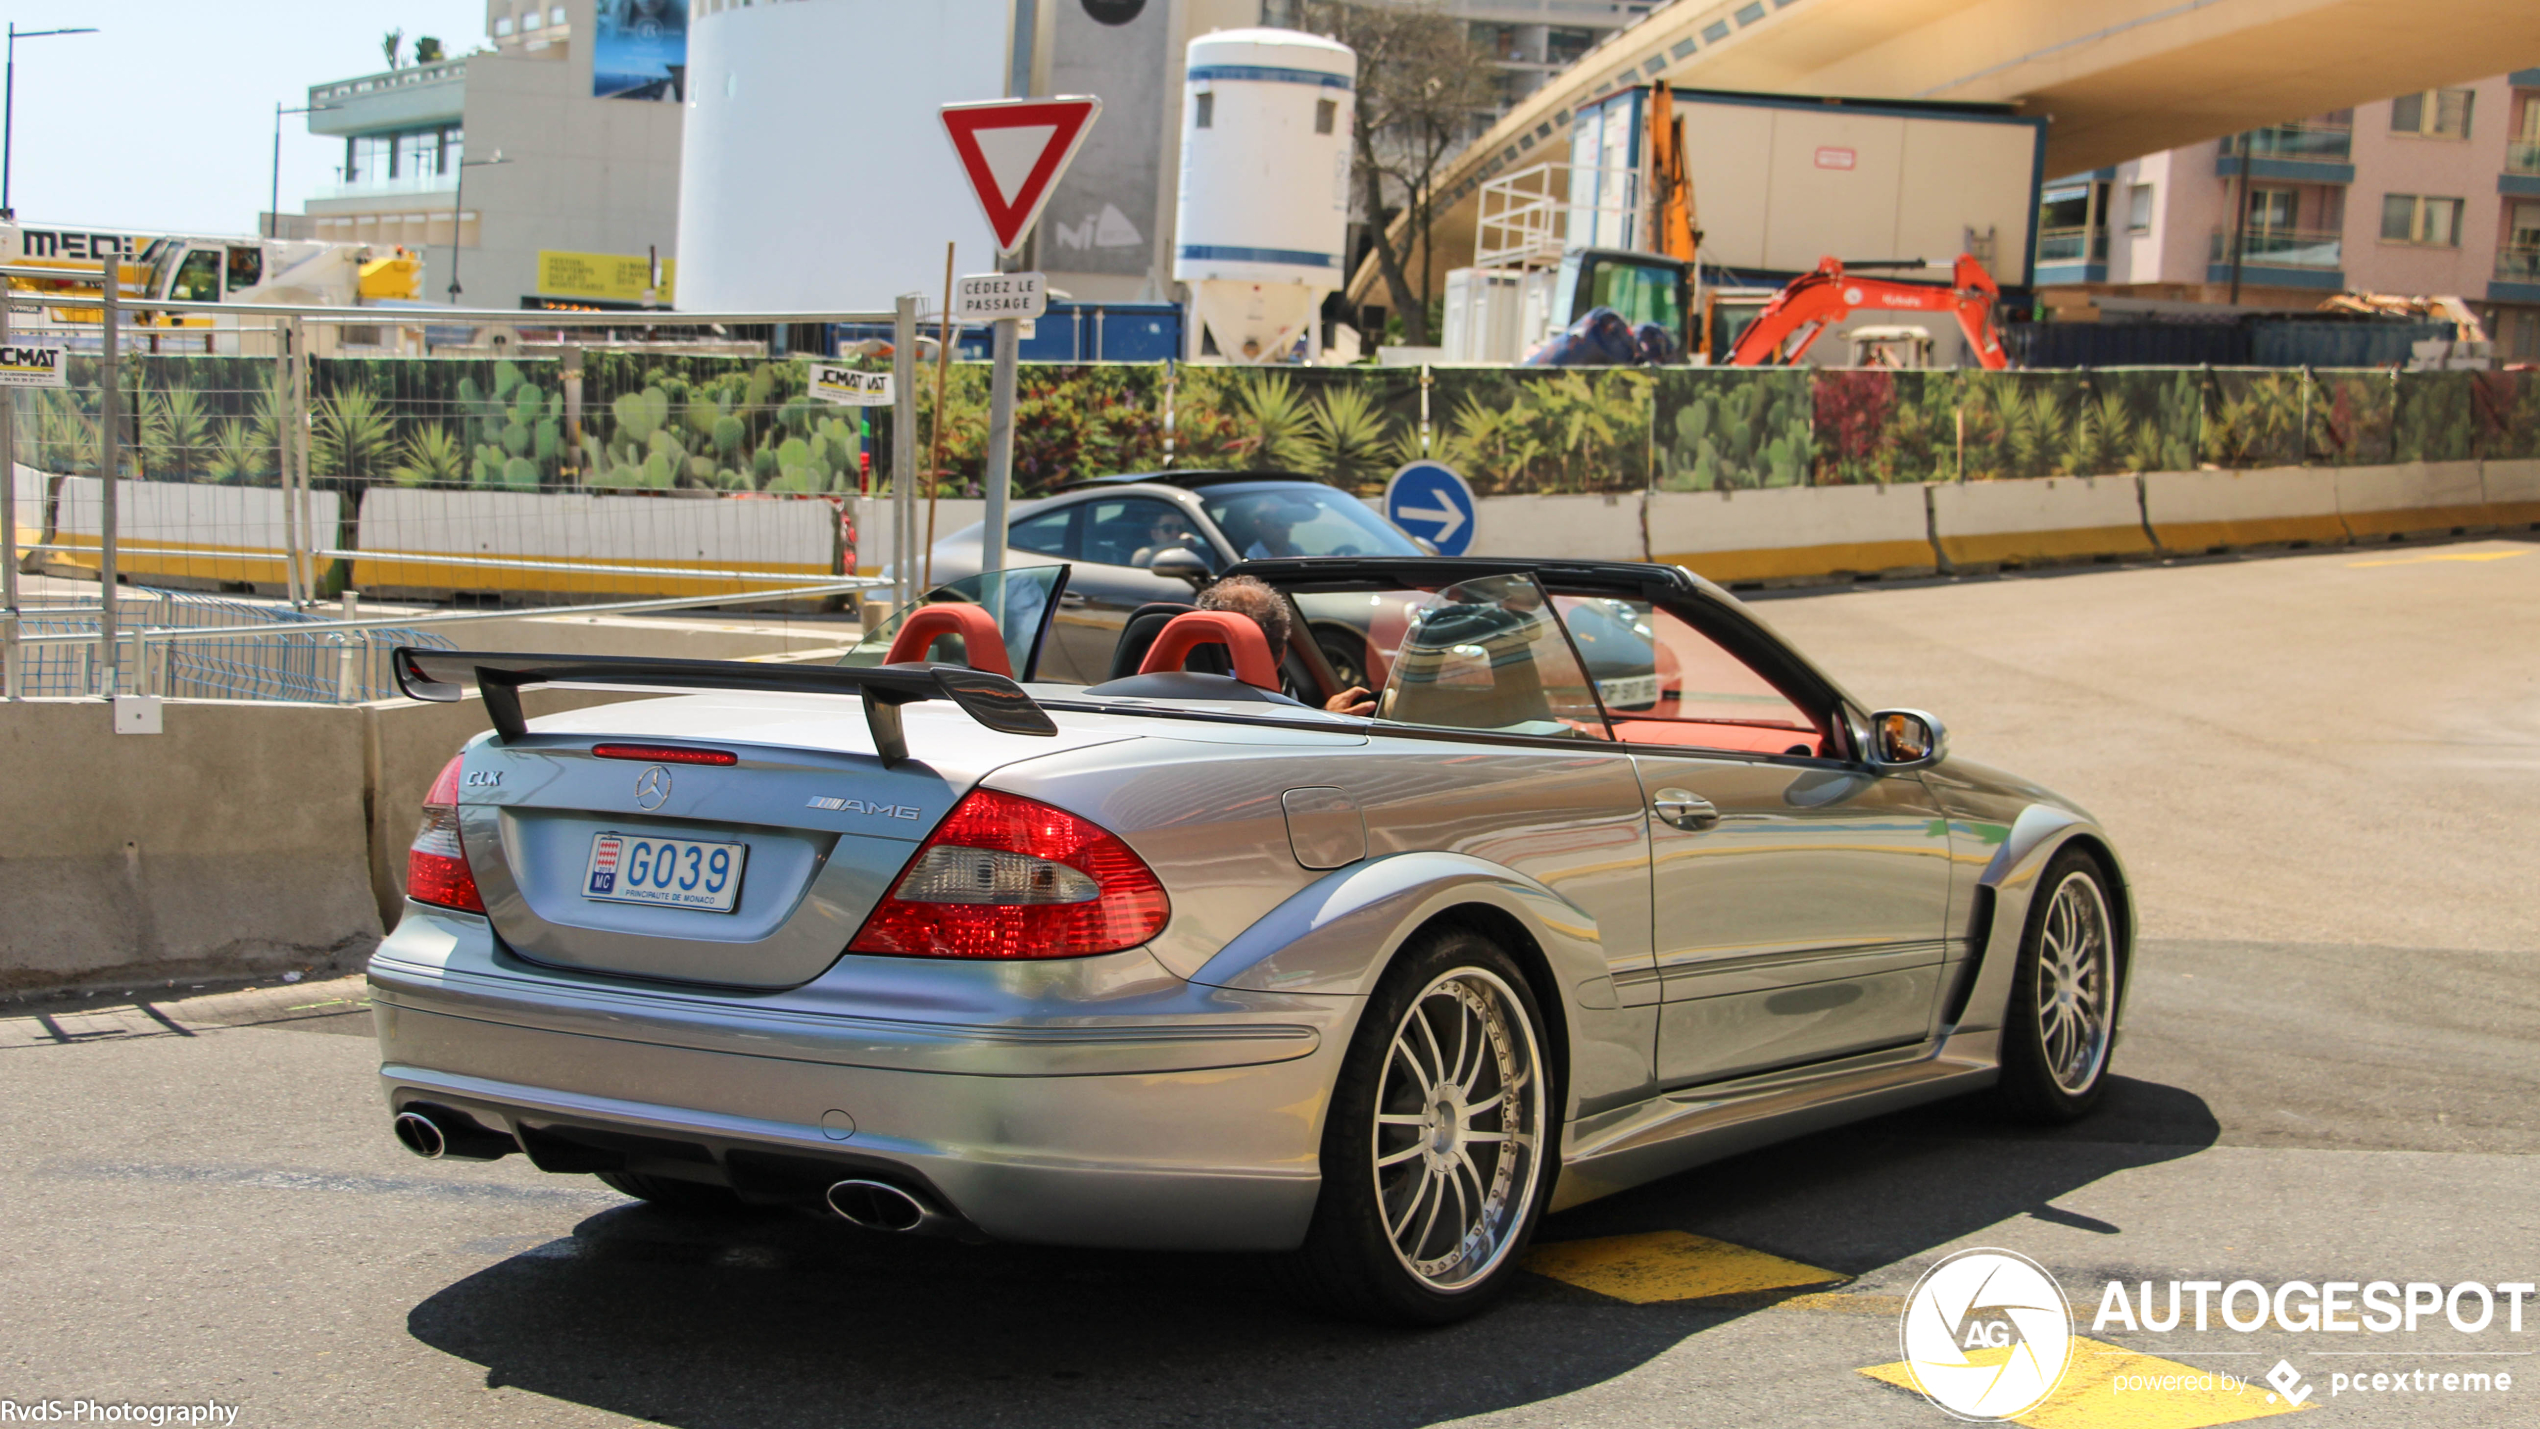 Mercedes-Benz CLK DTM AMG is also a permanent resident of Monaco